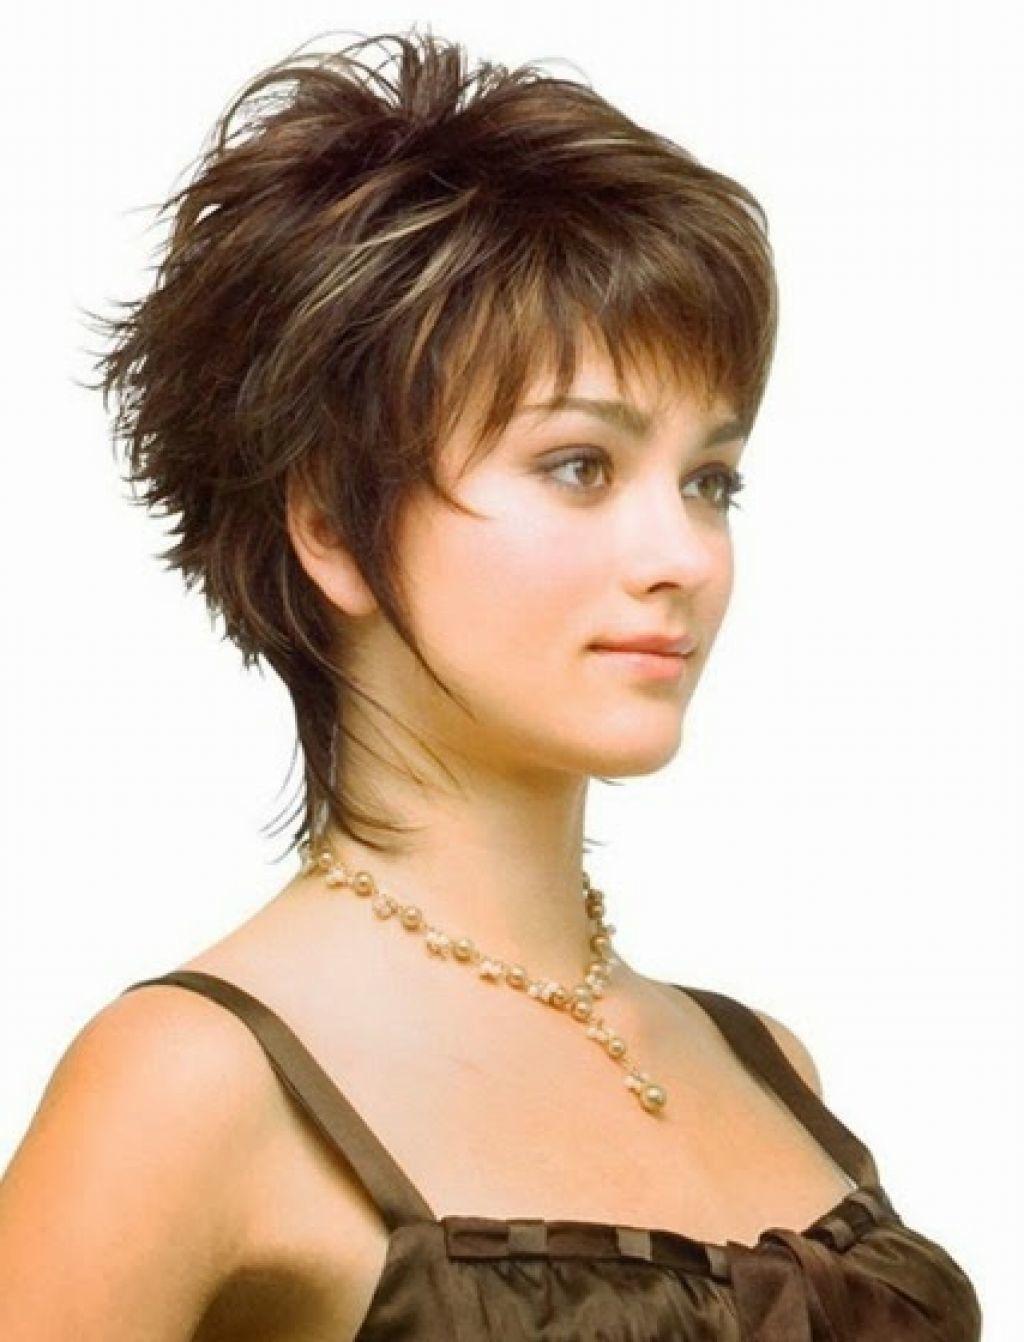 Hairstyle According To My Face Hairstyles Short Hairstyles For Fine Hair Fat Face Short